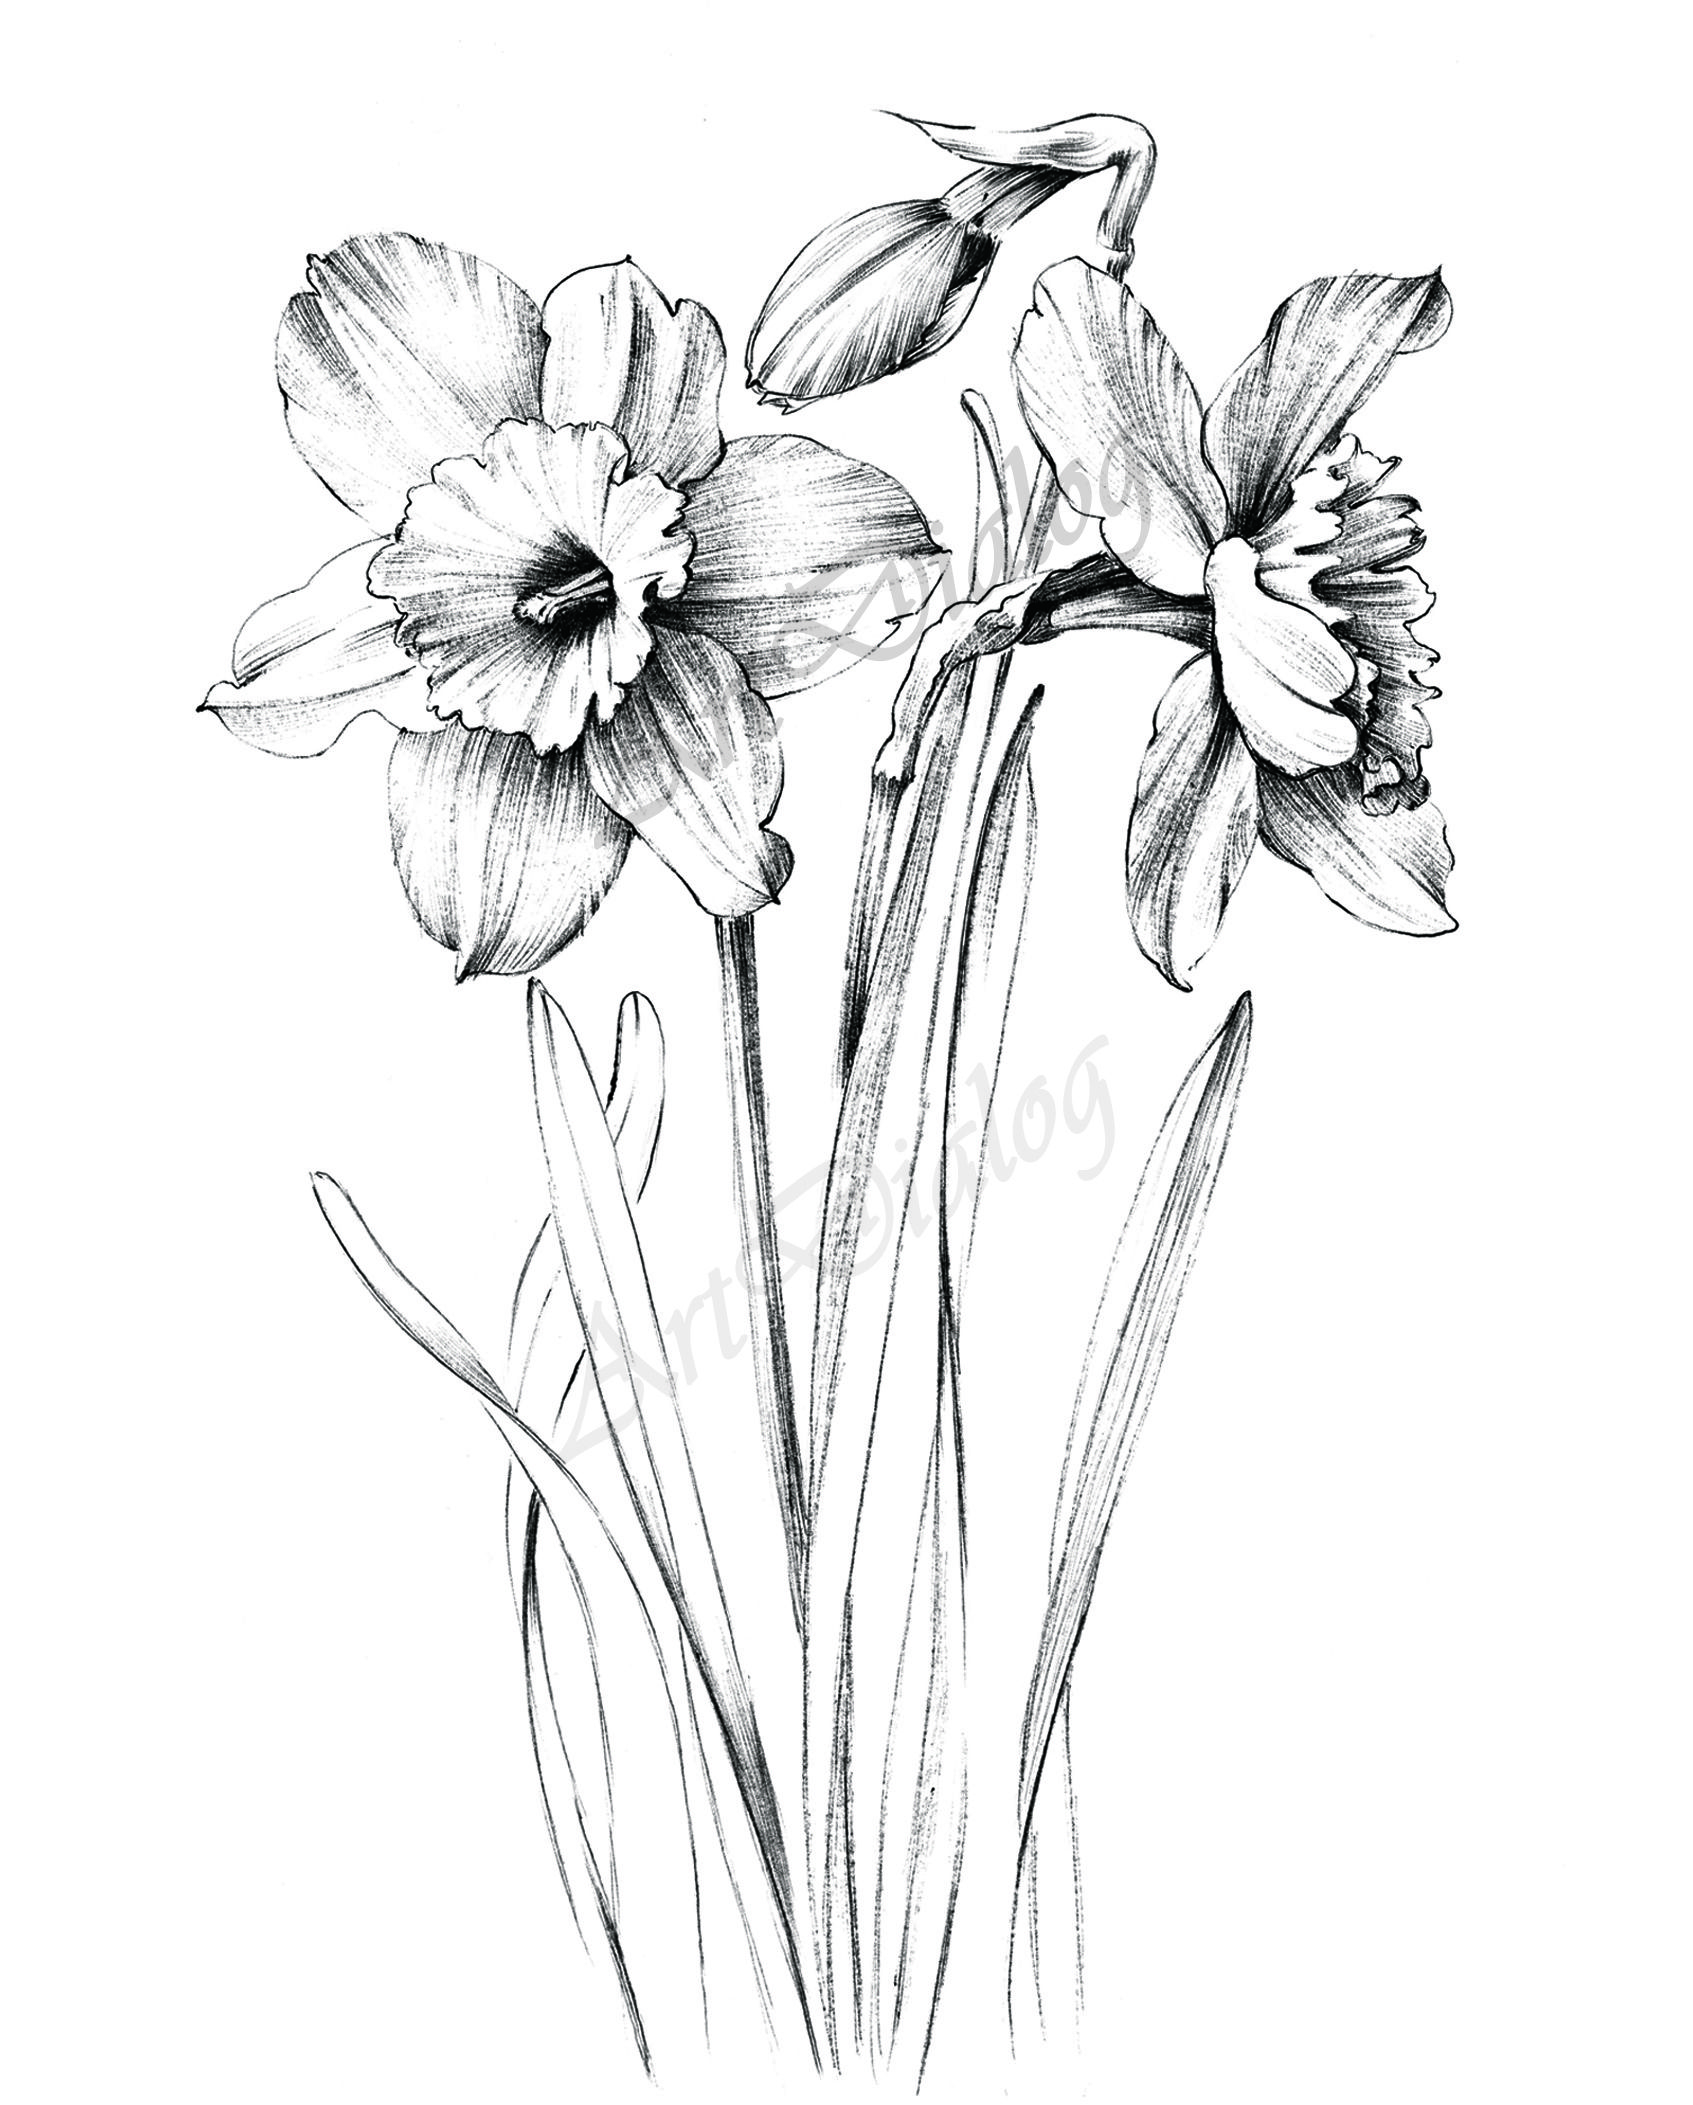 Narcissus Sketch Large Print Hand Drawn Clipart Daffodil Flower Line Drawing Botanical Prints A1 Floral Hygge Black White In 2020 Flower Art Drawing Flower Line Drawings Drawings